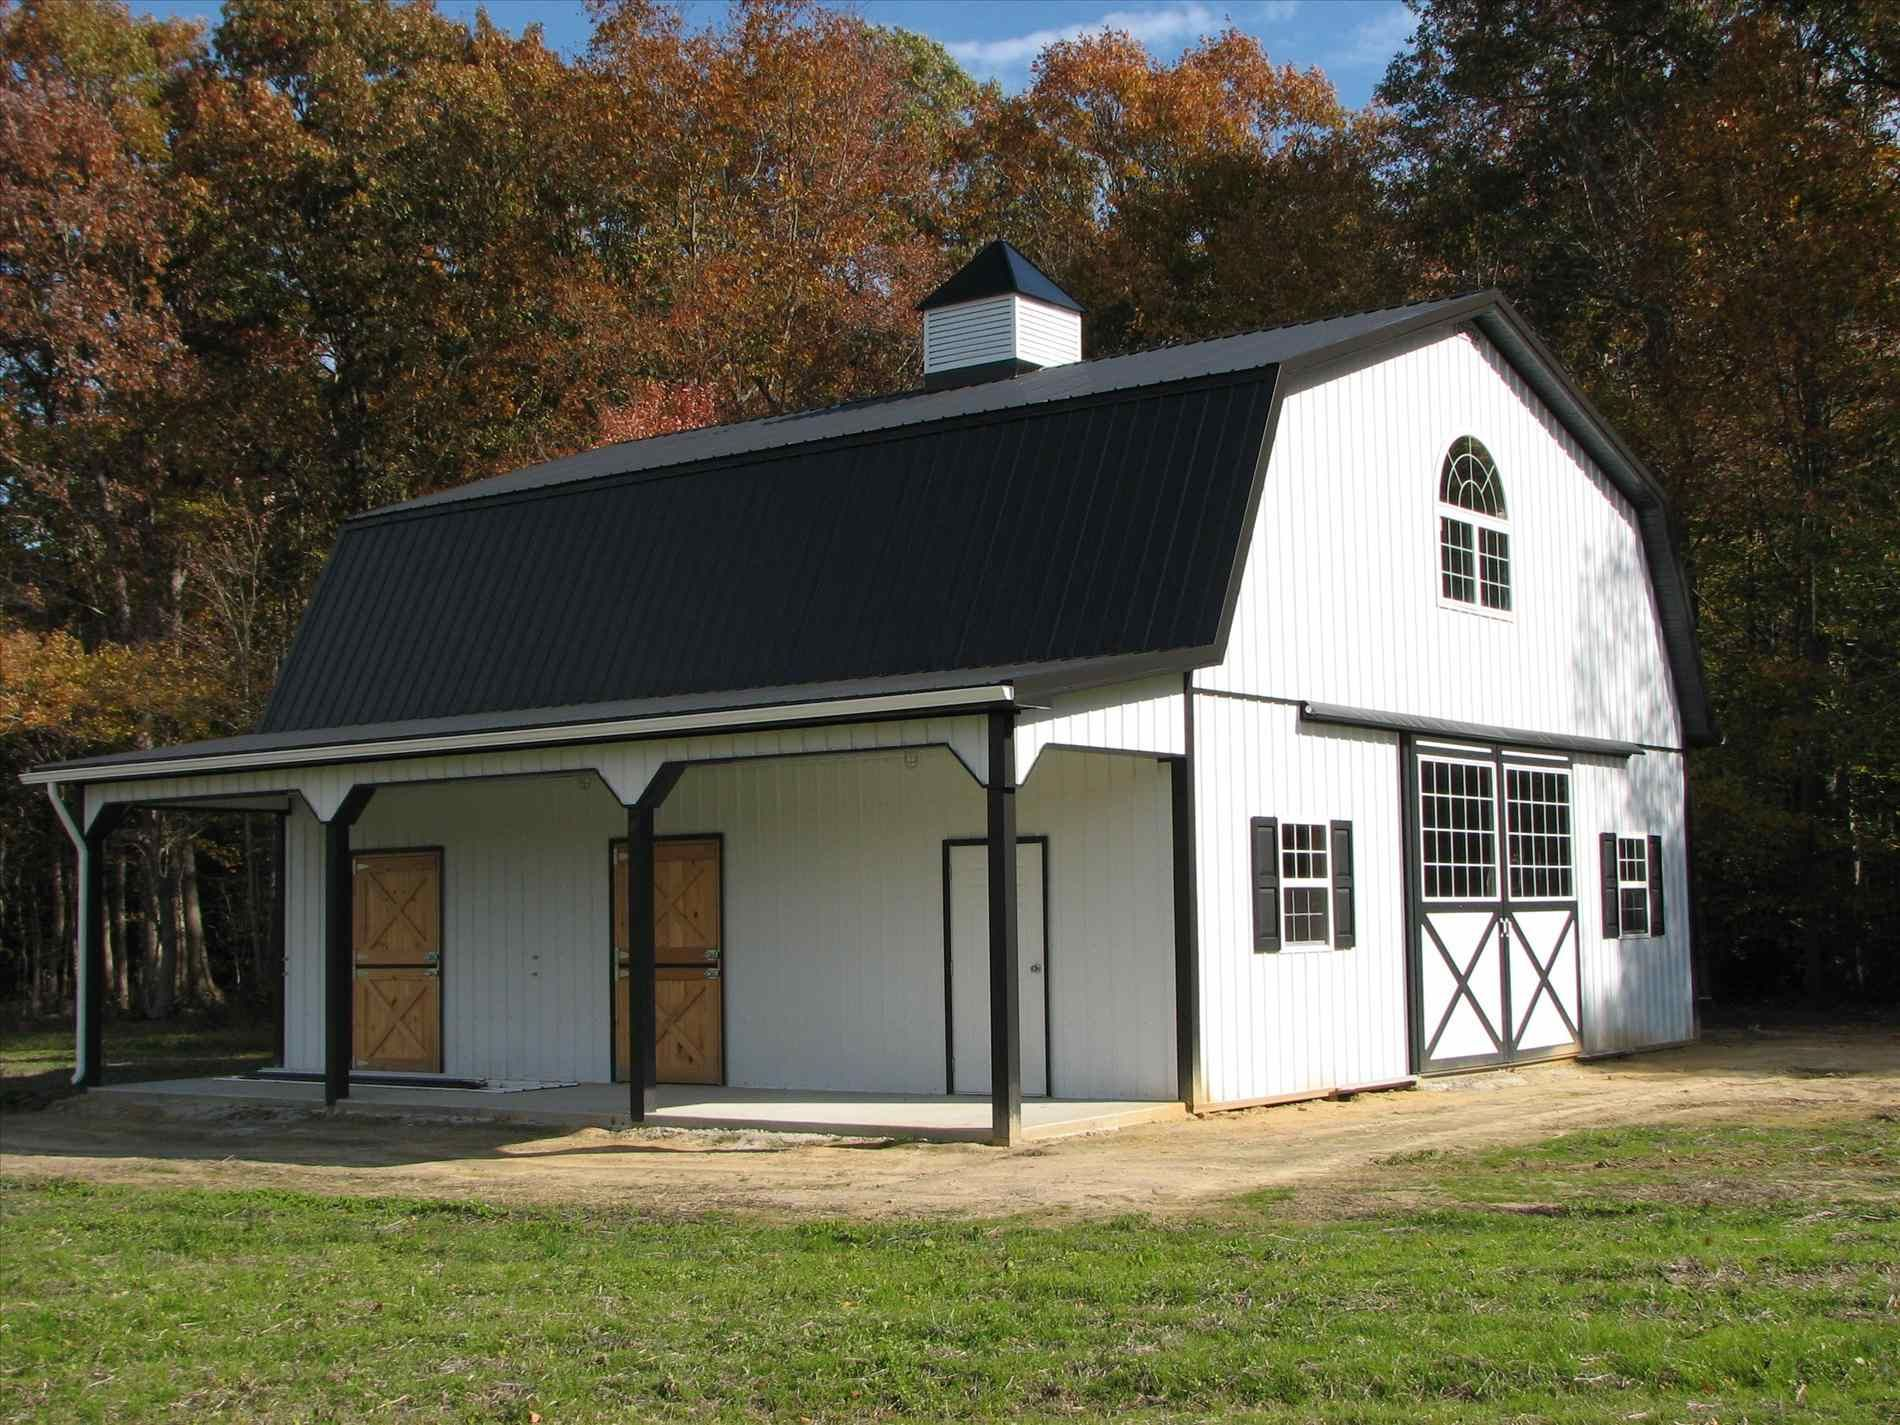 Gambrel Roof Designs Home Roof Ideas Pole Barn House Plans Gambrel Roof Barn Roof